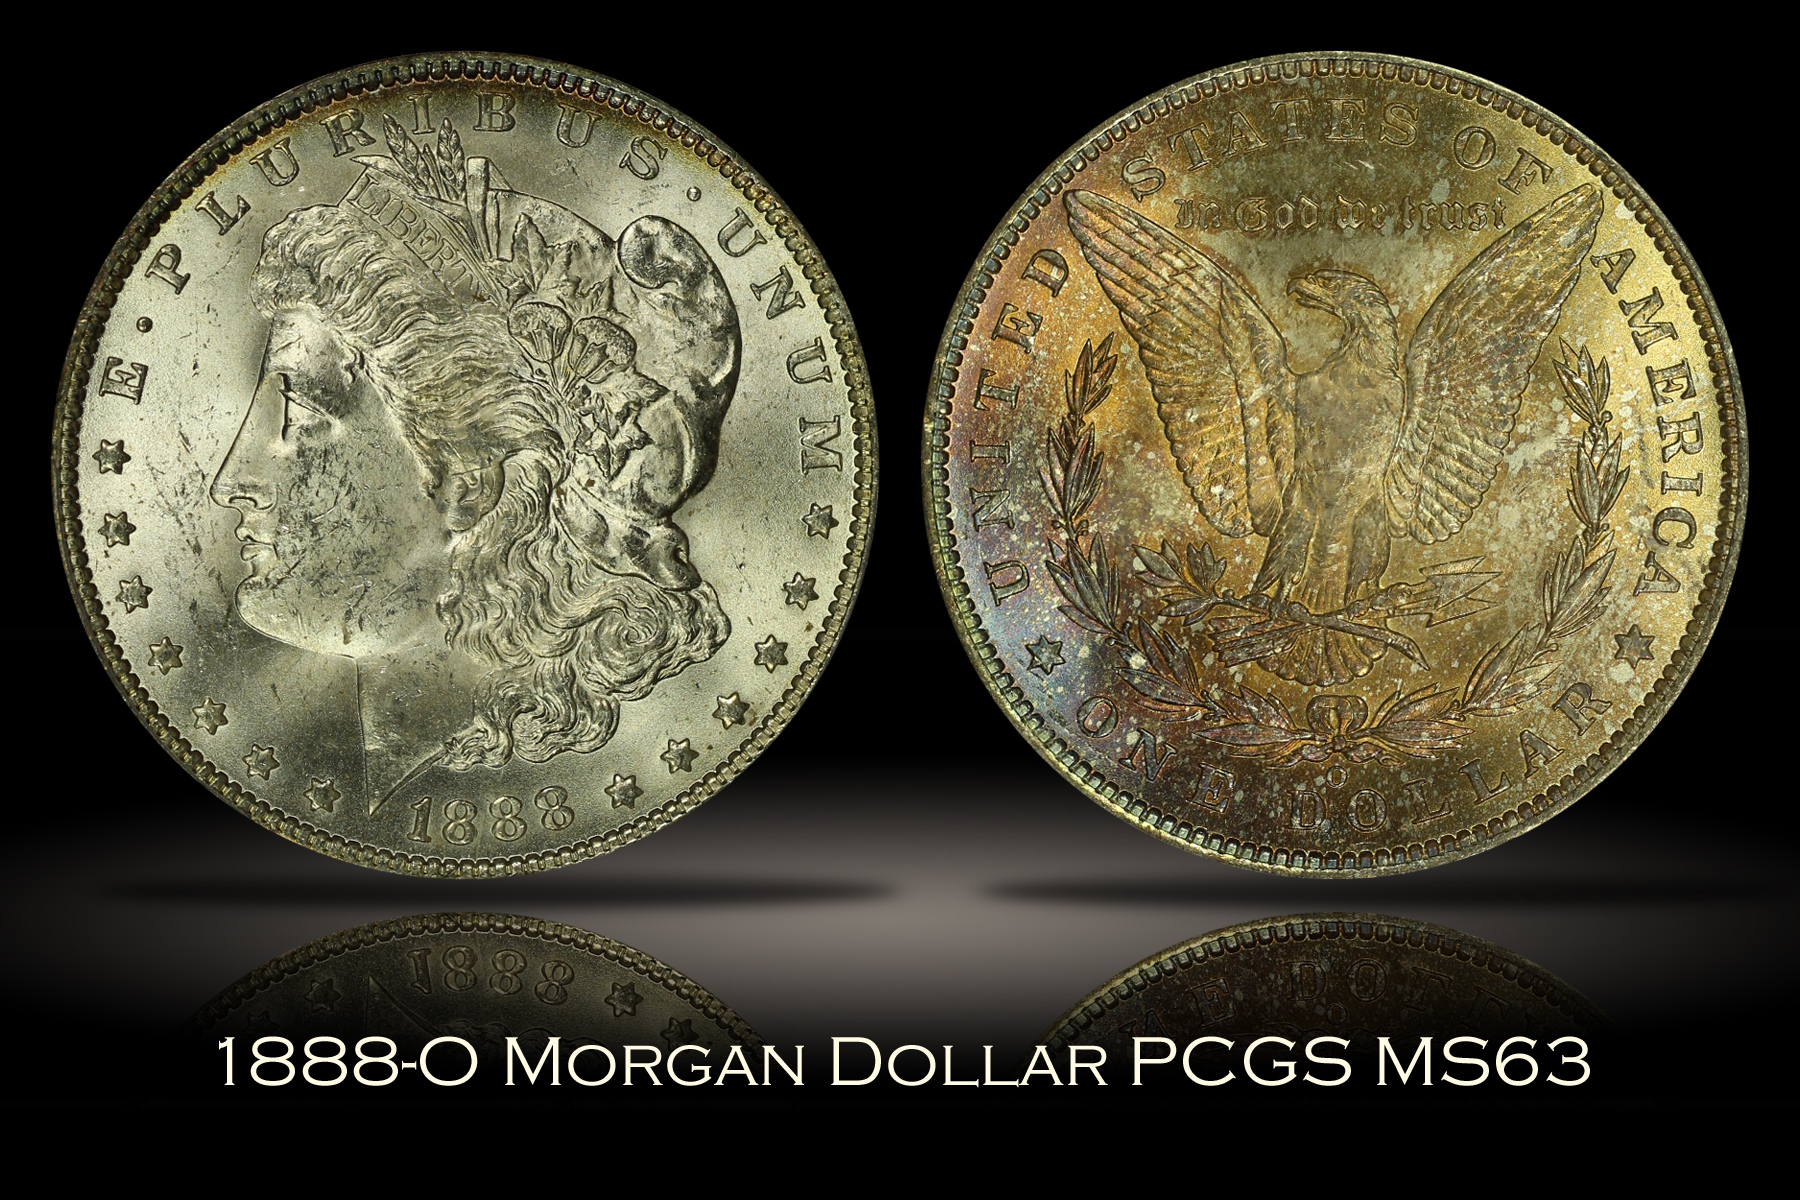 1888-O Morgan Dollar PCGS MS63